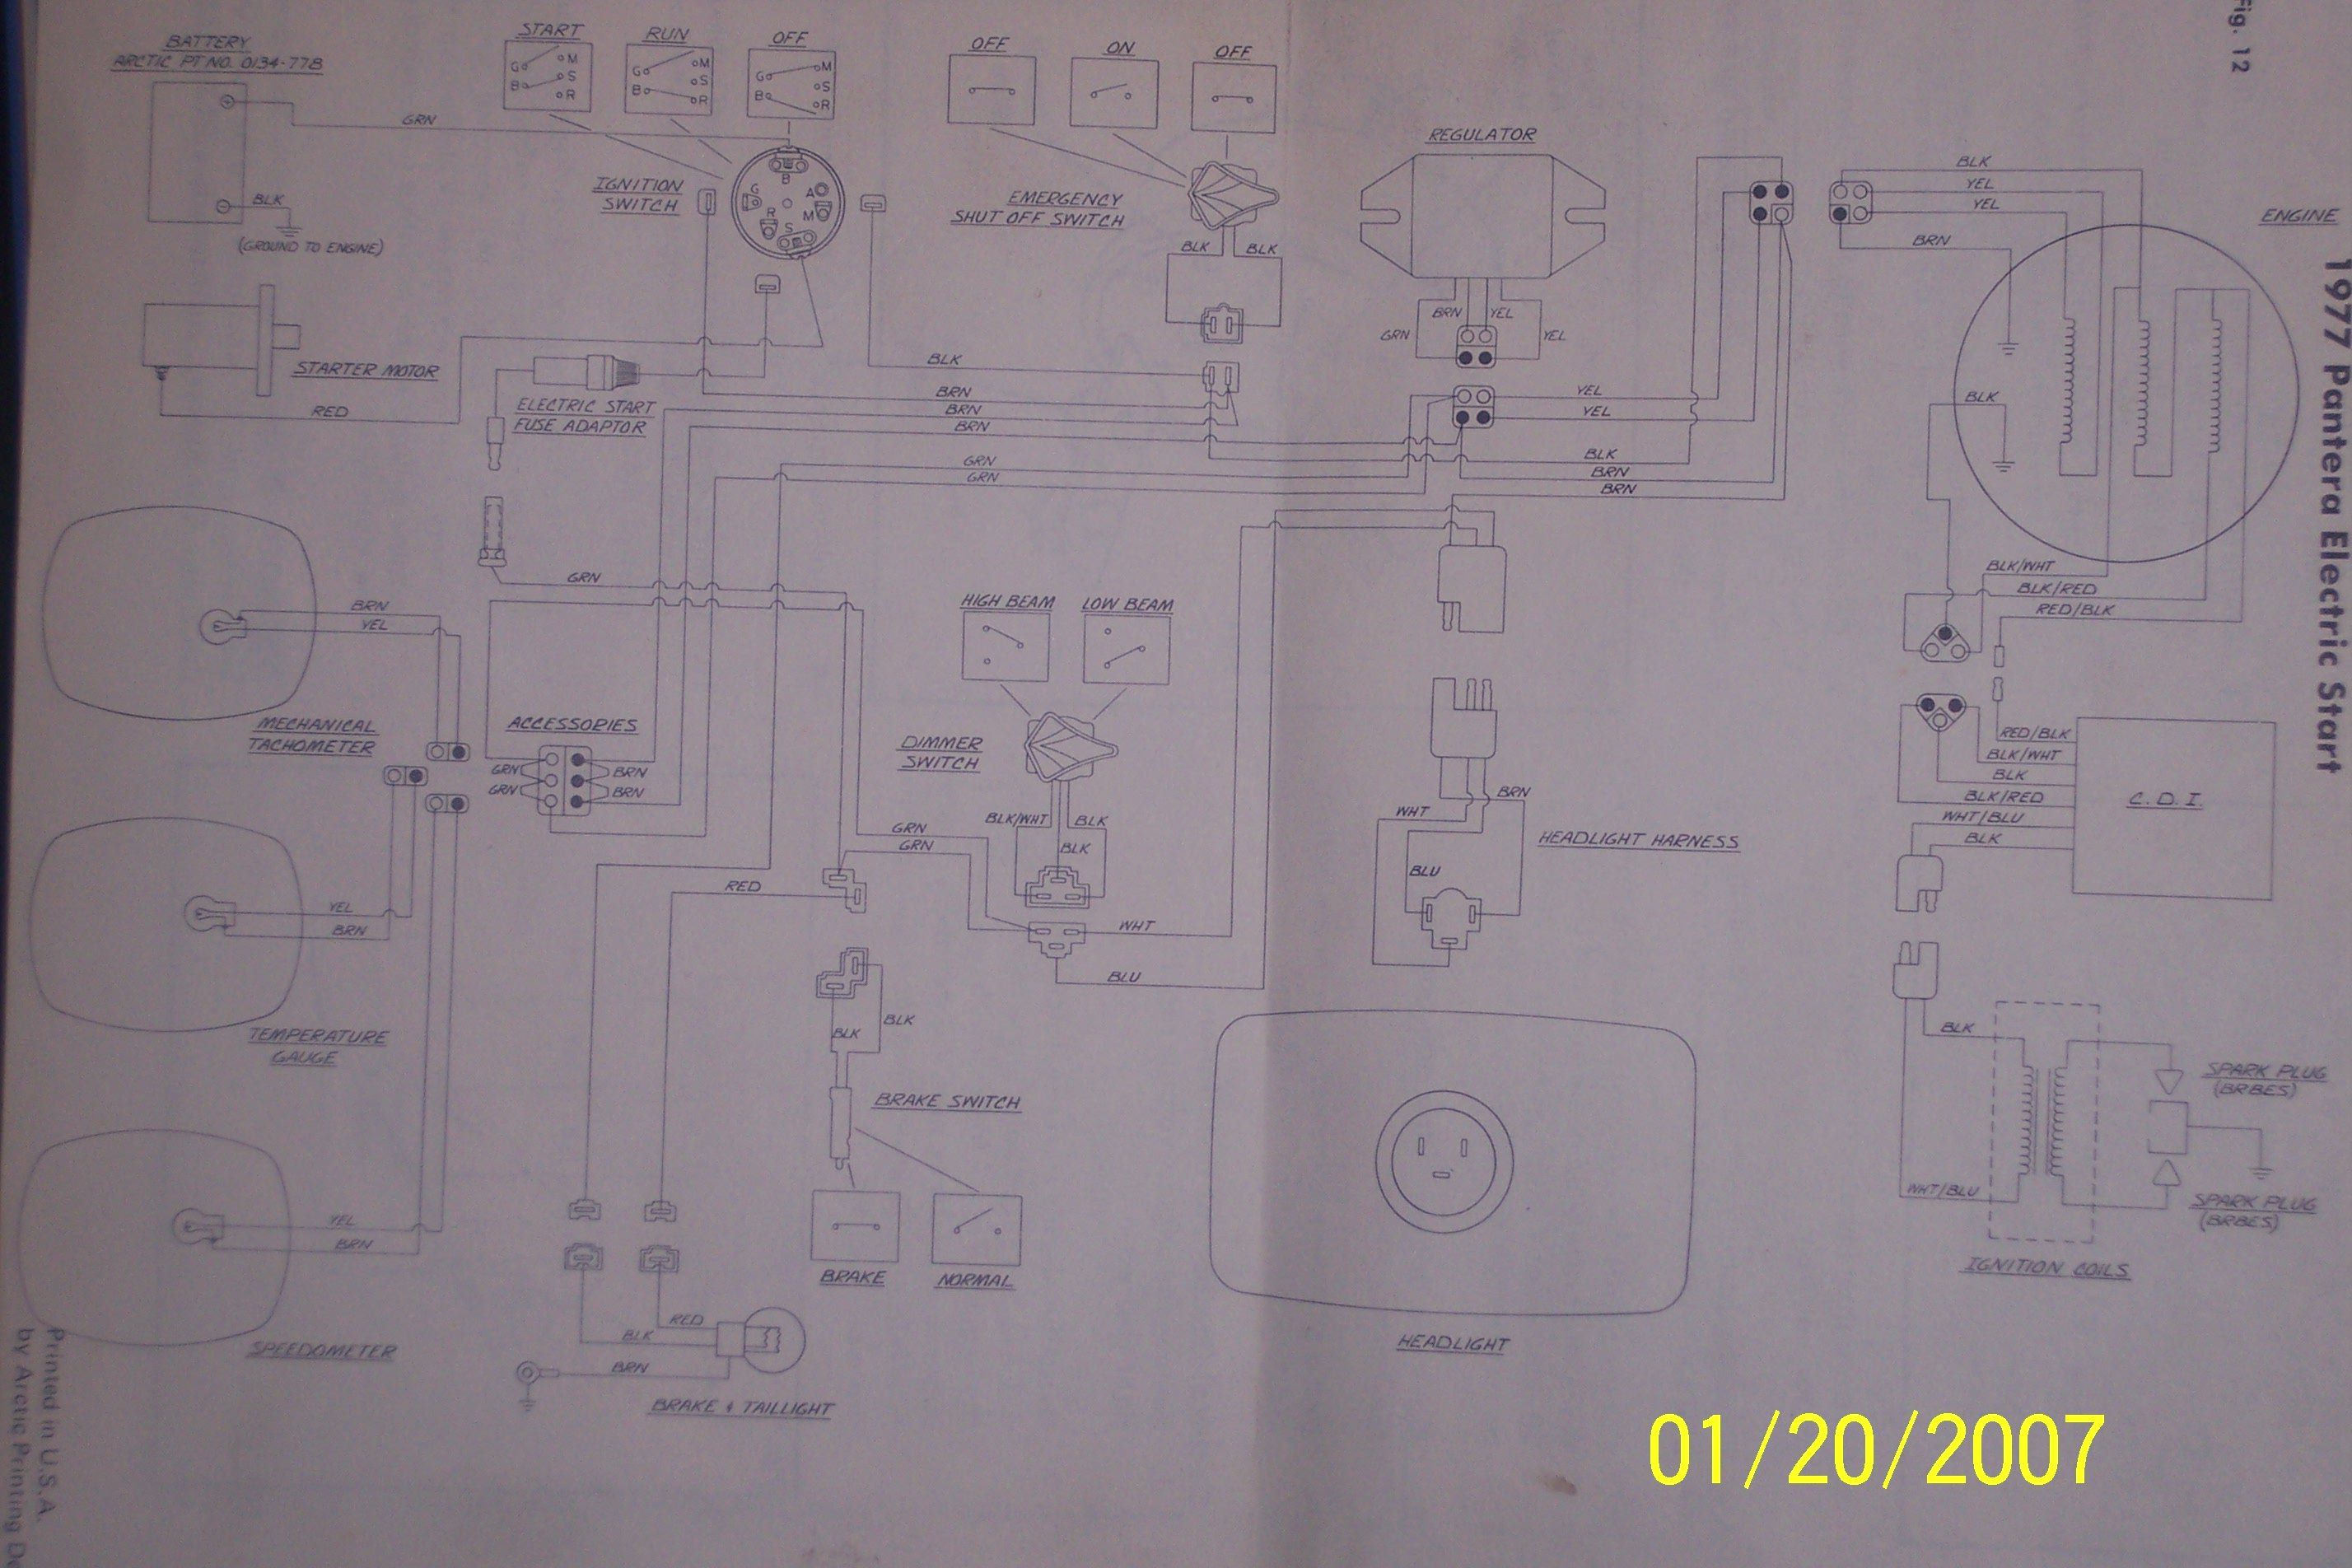 Rupp Snowmobile Wiring Diagram Library Old Diagrams Free Polaris Click Image For Larger Version Name 100 0319 Views 1147 Size 6874